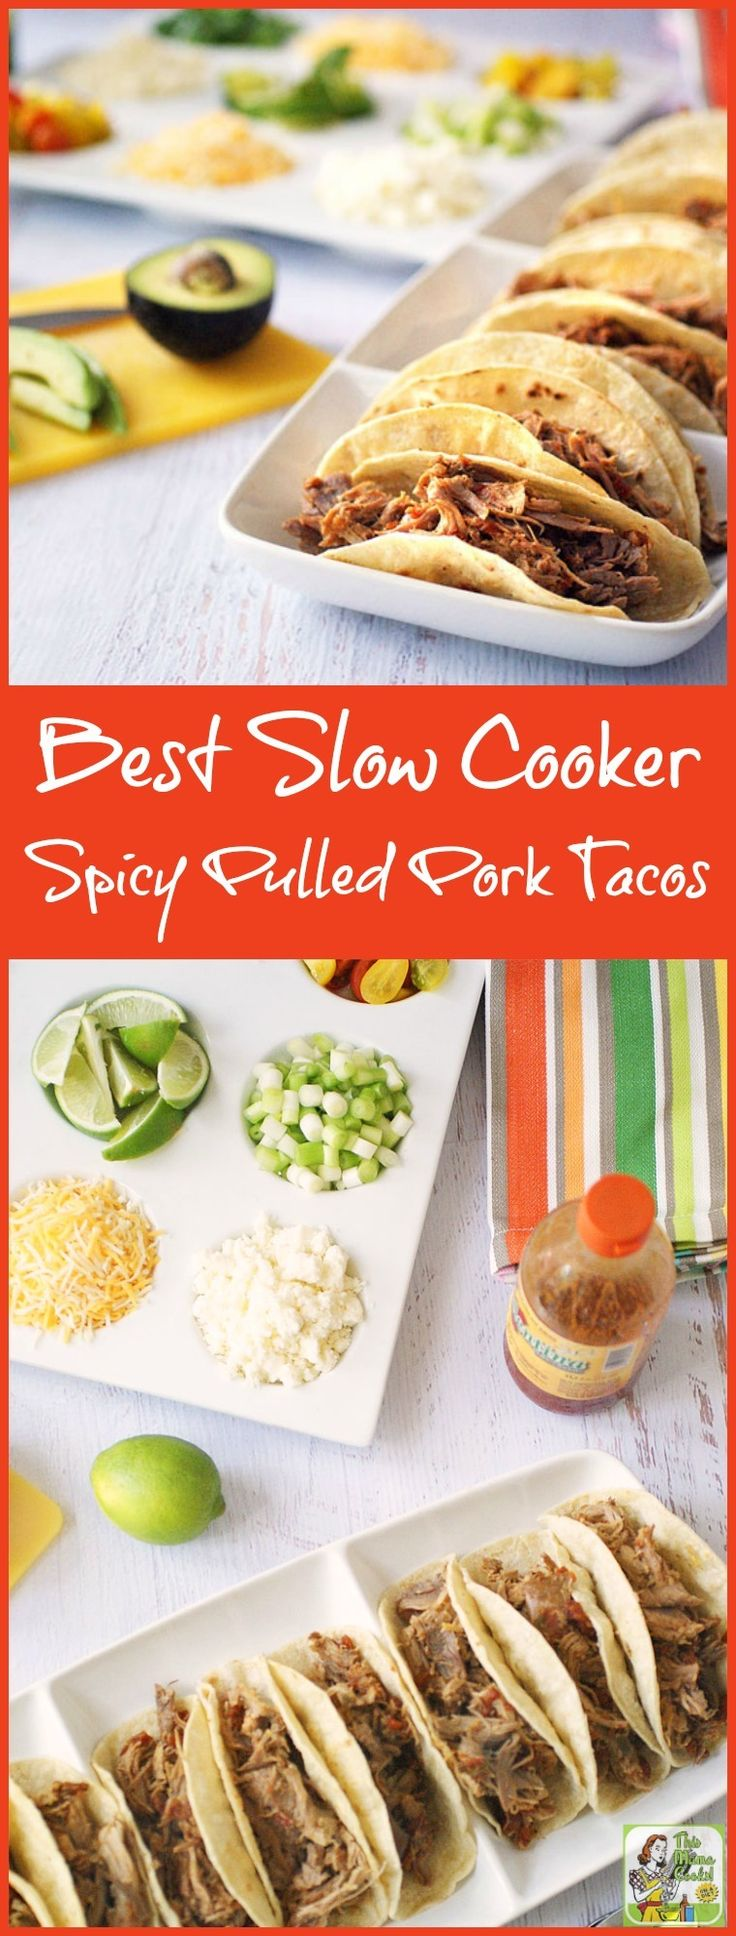 Need a recipe for Taco Tuesday or Family Taco Night? Try this Best Slow Cooker Spicy Pulled Pork Tacos recipe. Super easy and great for parties, too!